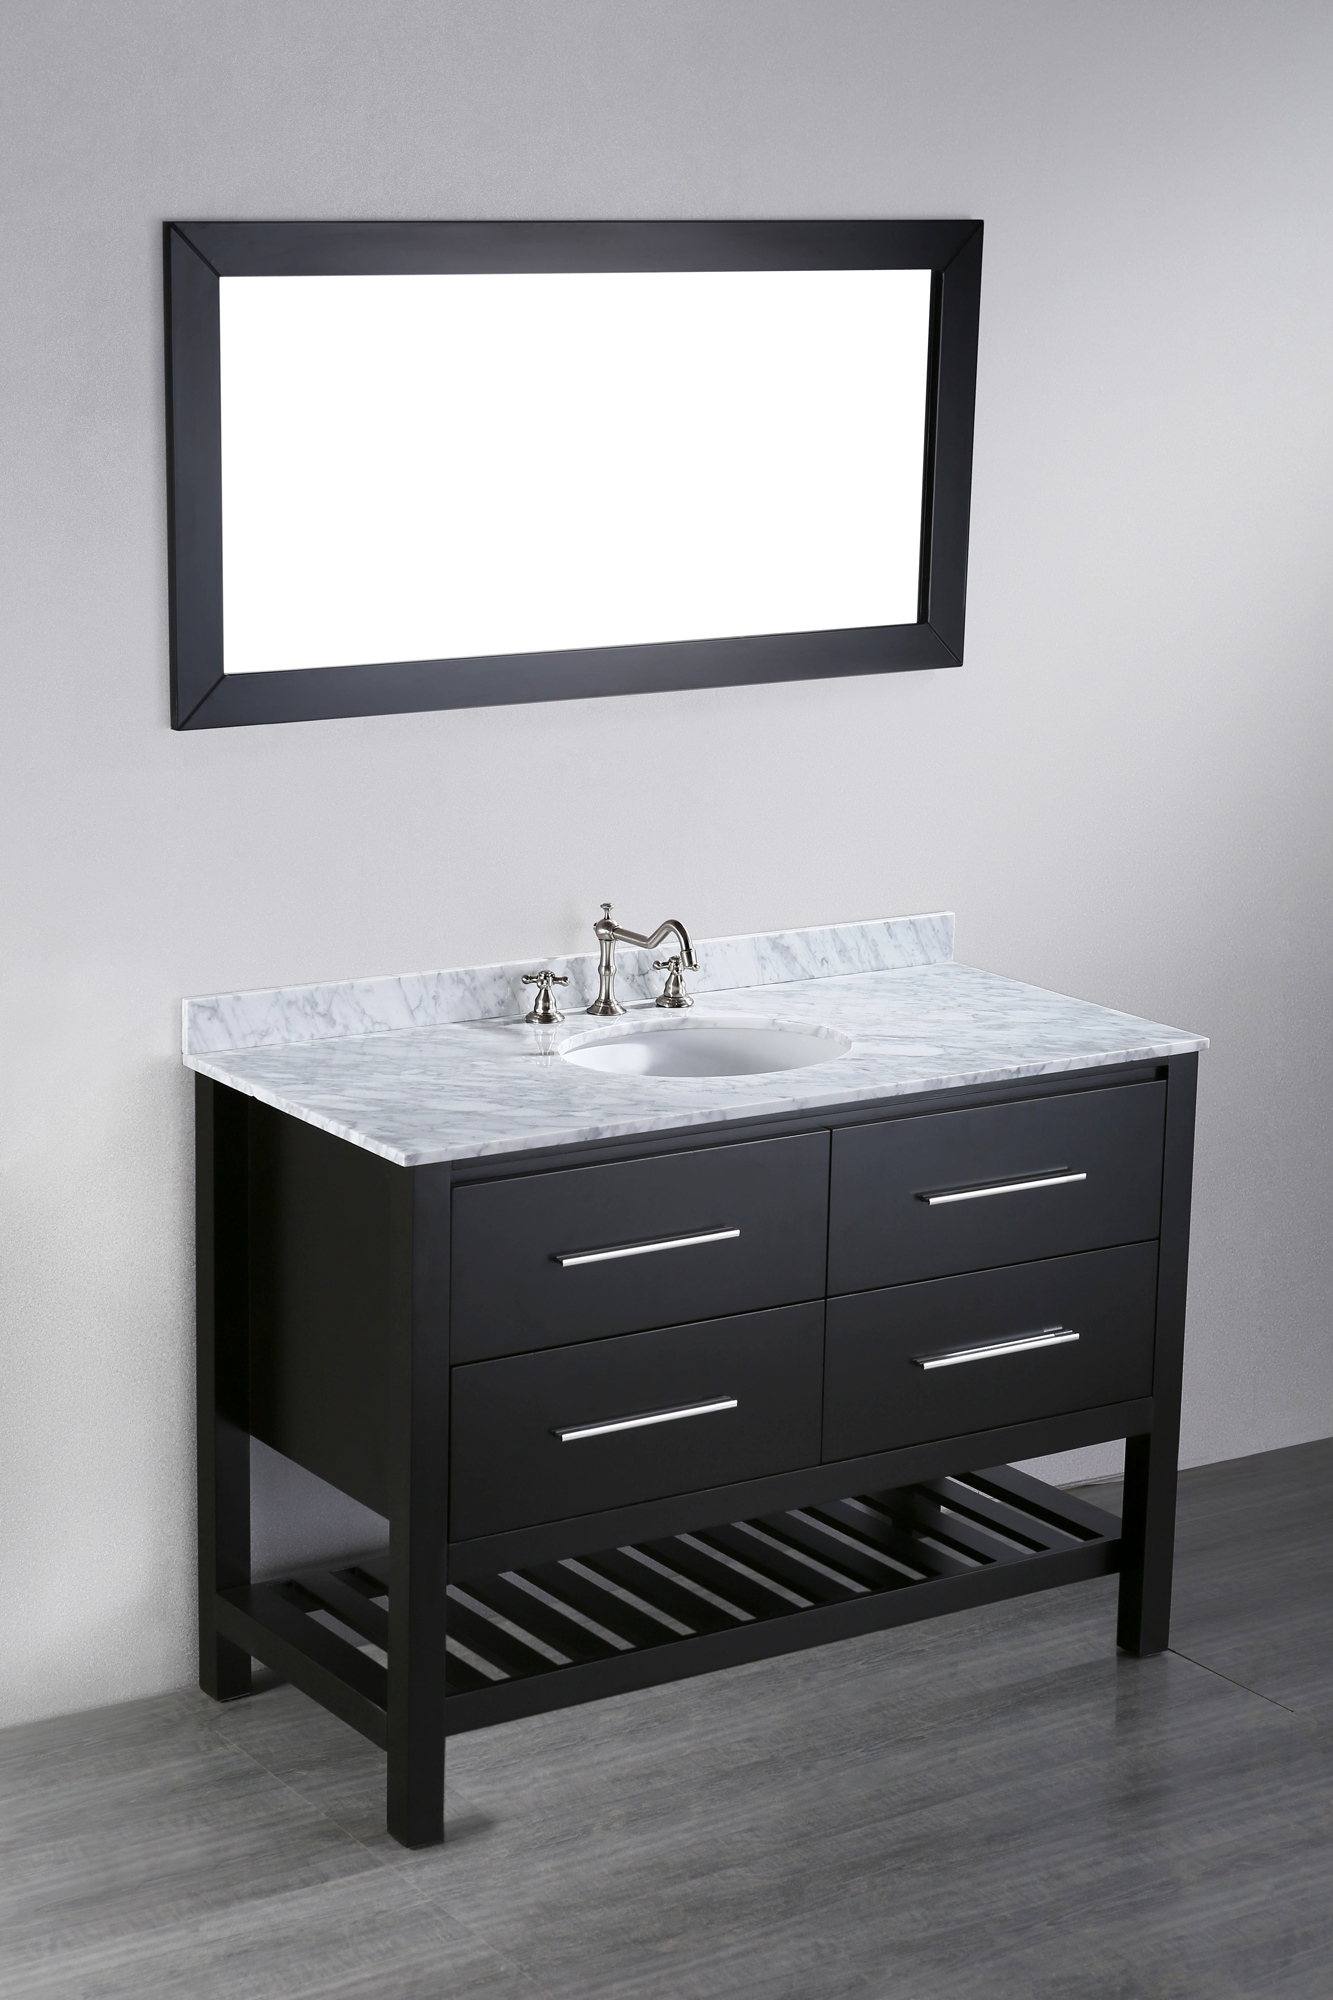 48 Inch Bathroom Vanity With Matching Linen Tower